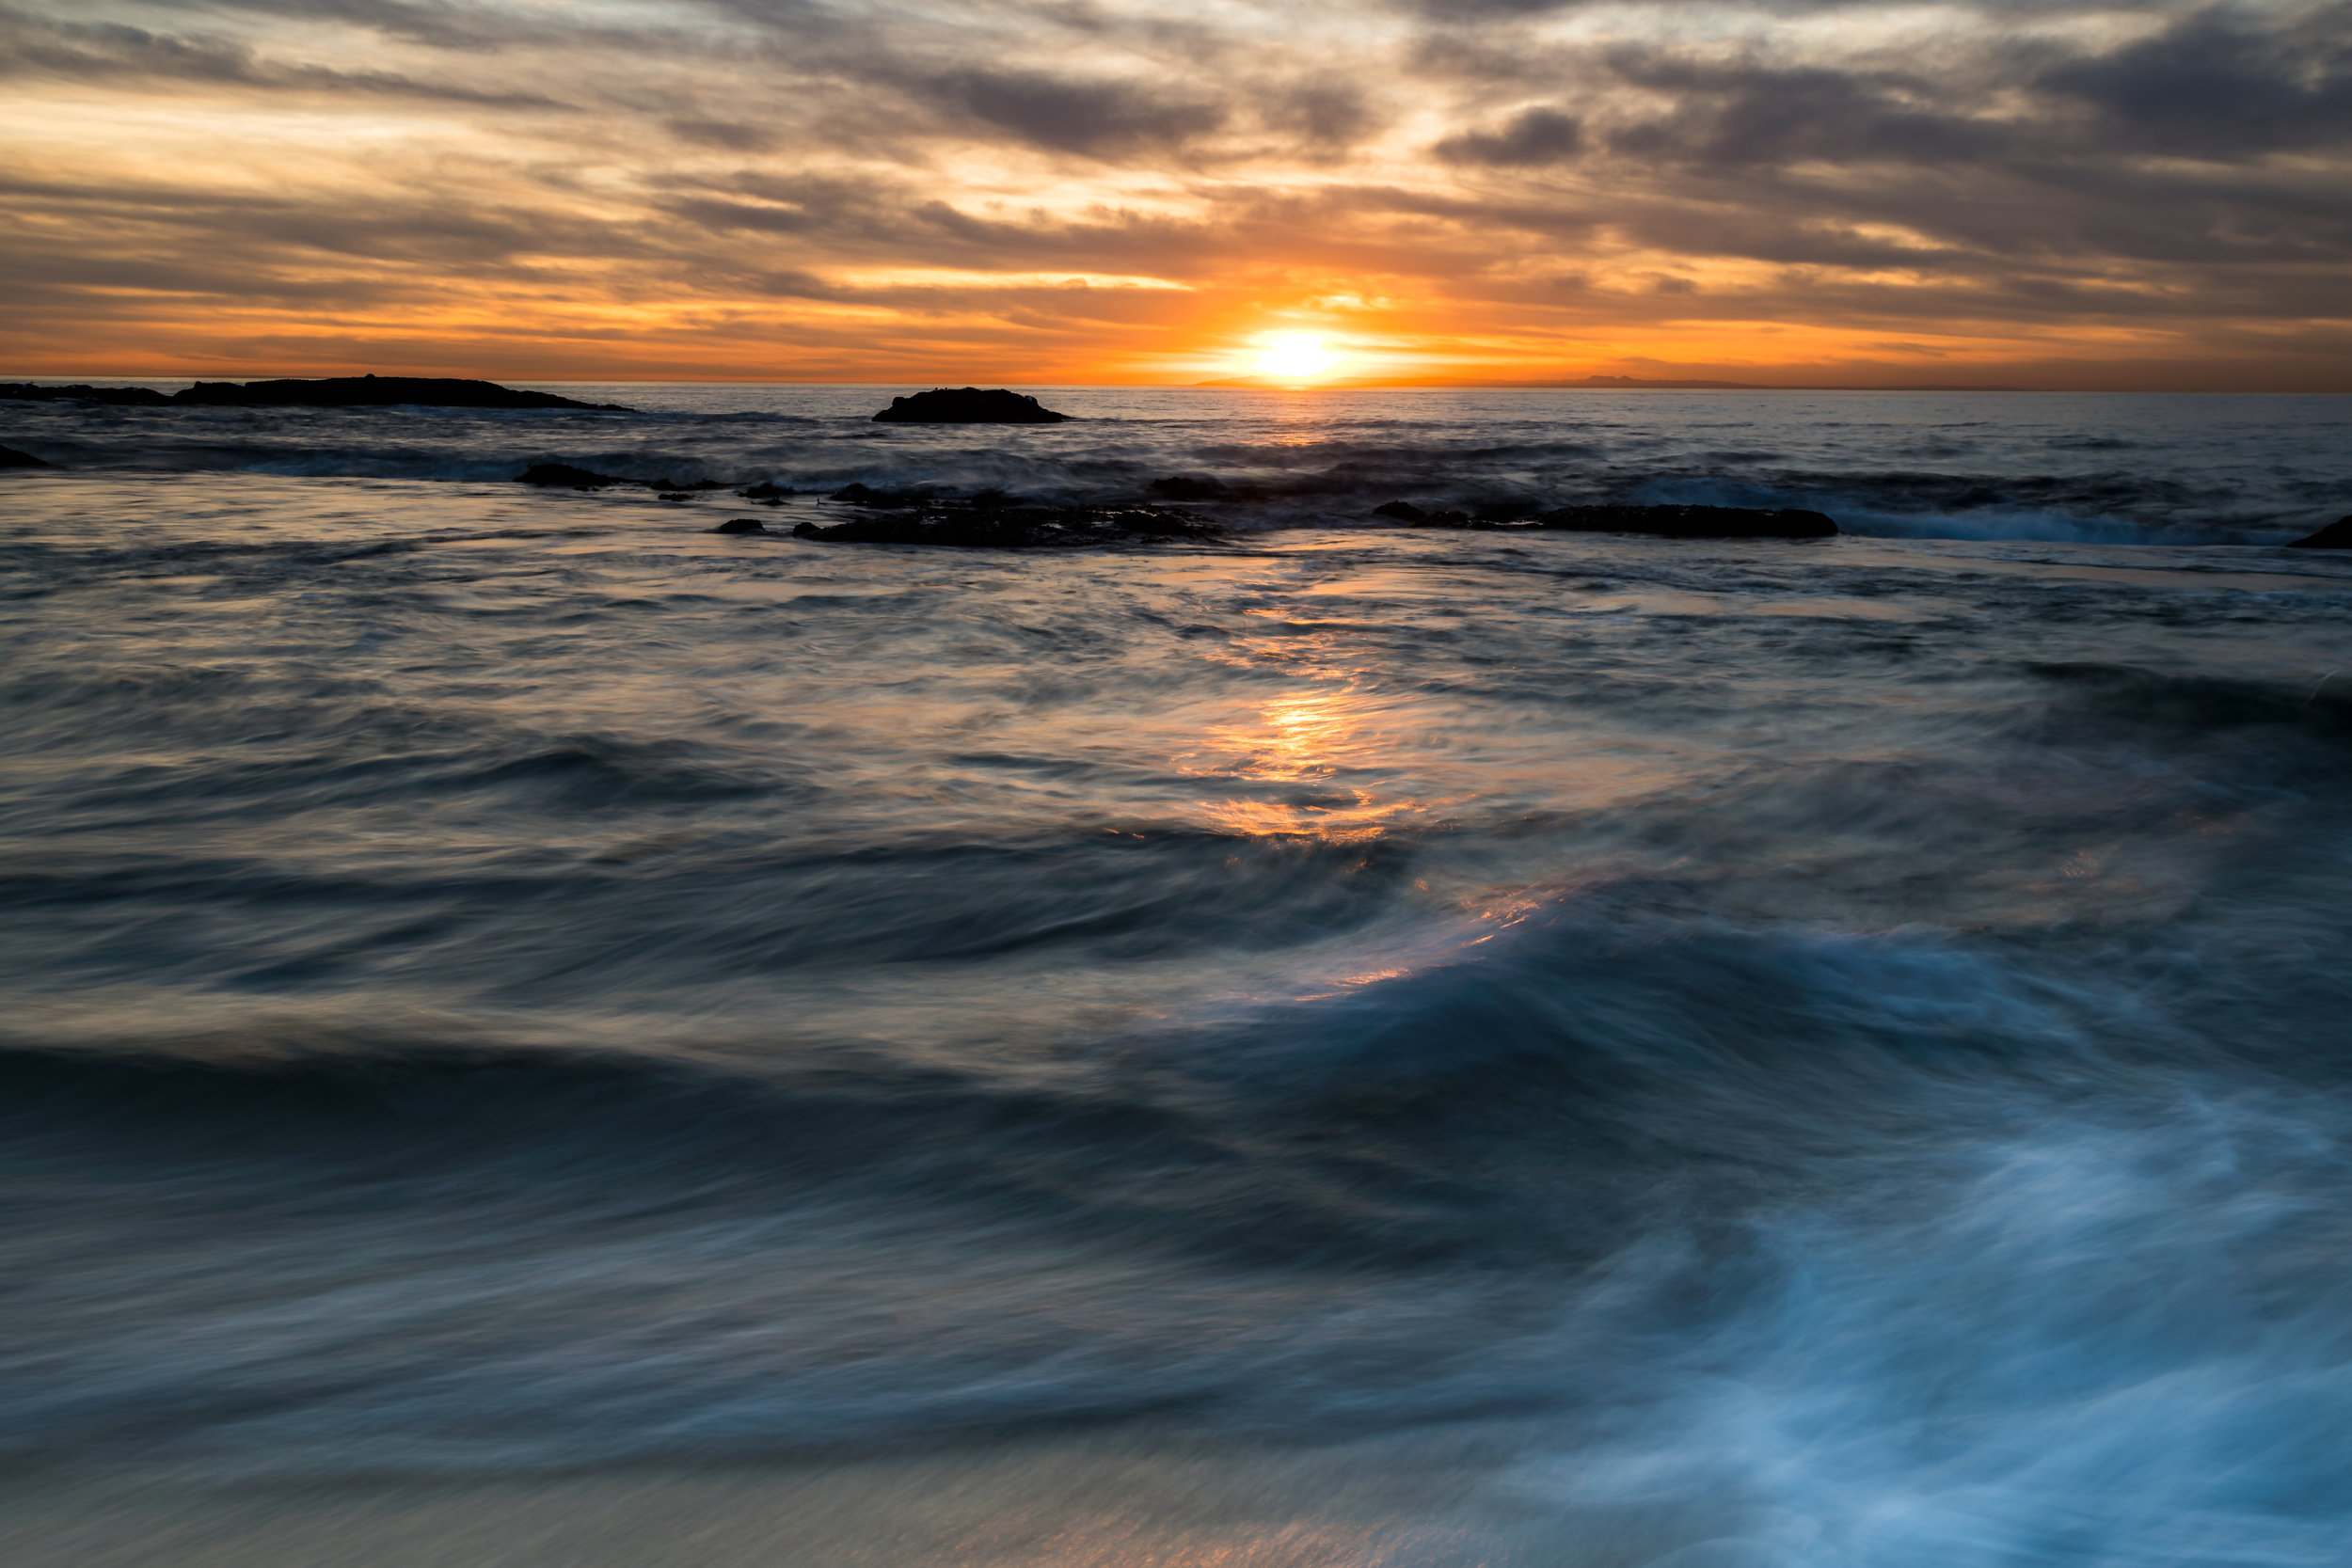 A long exposure captures movement in the waves durning a colorful sunset at Laguna Beach.